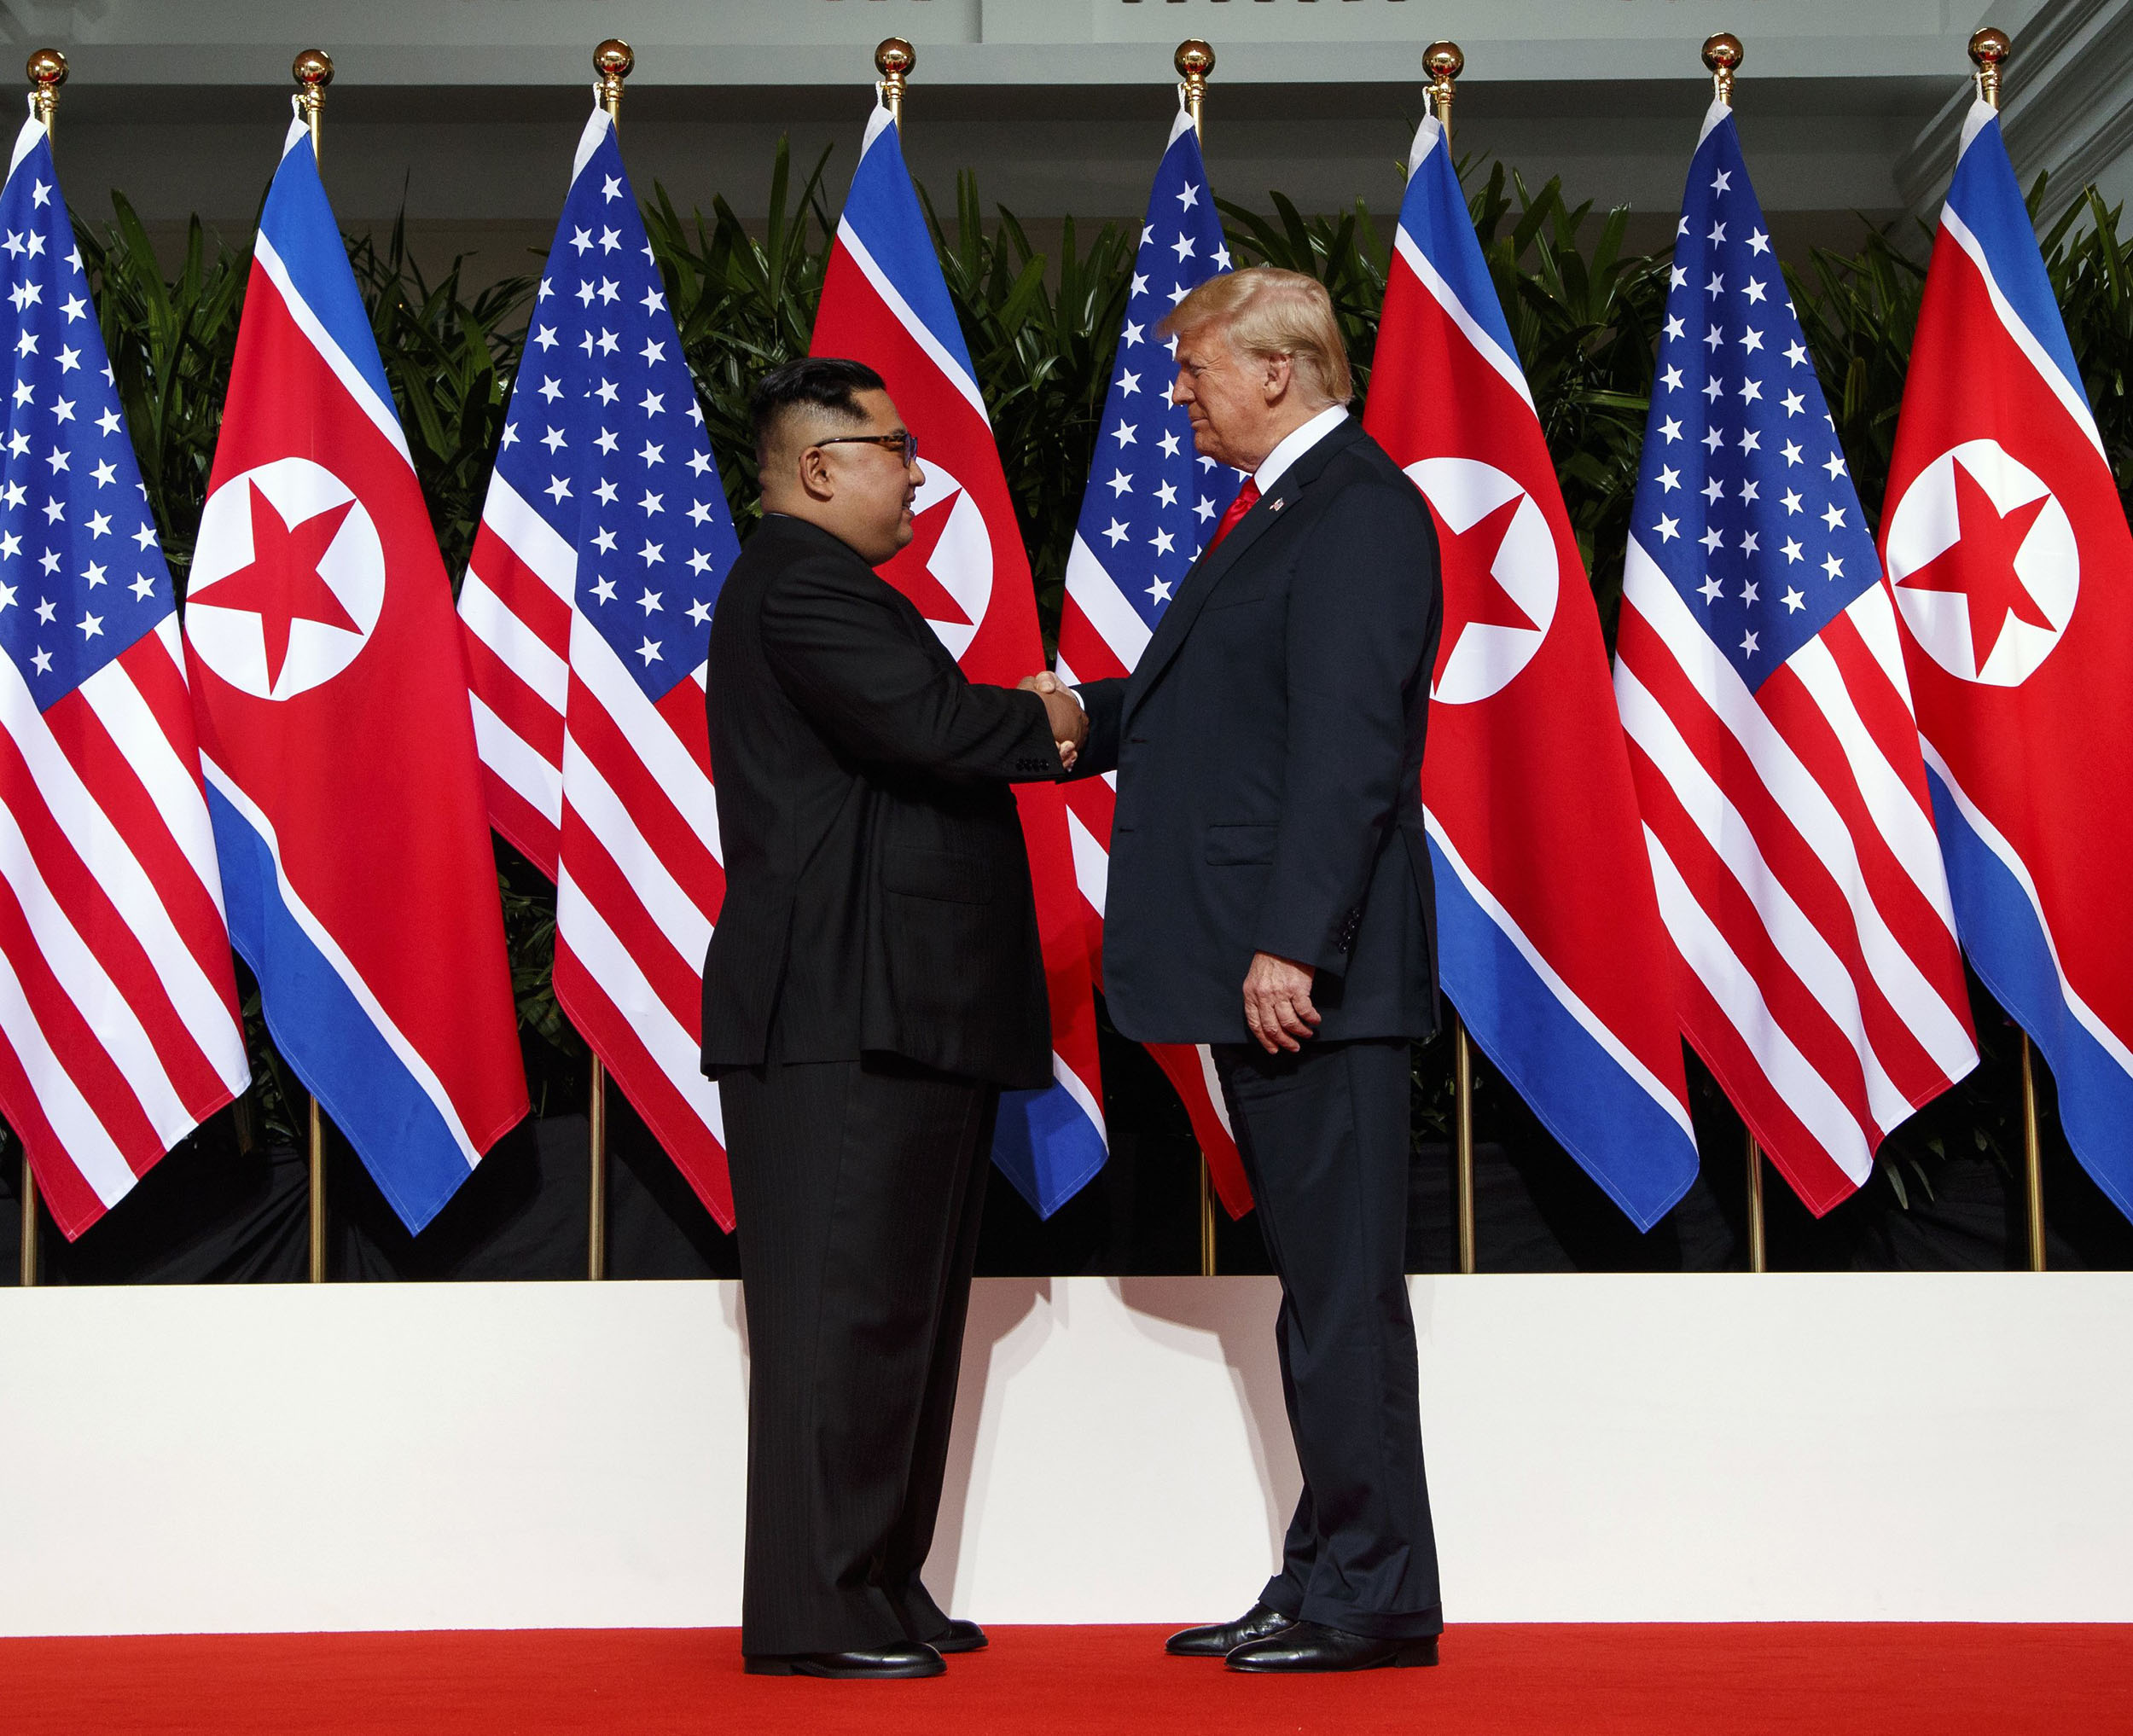 Trump's-agreement-with-Kim-contains-no-new-promises